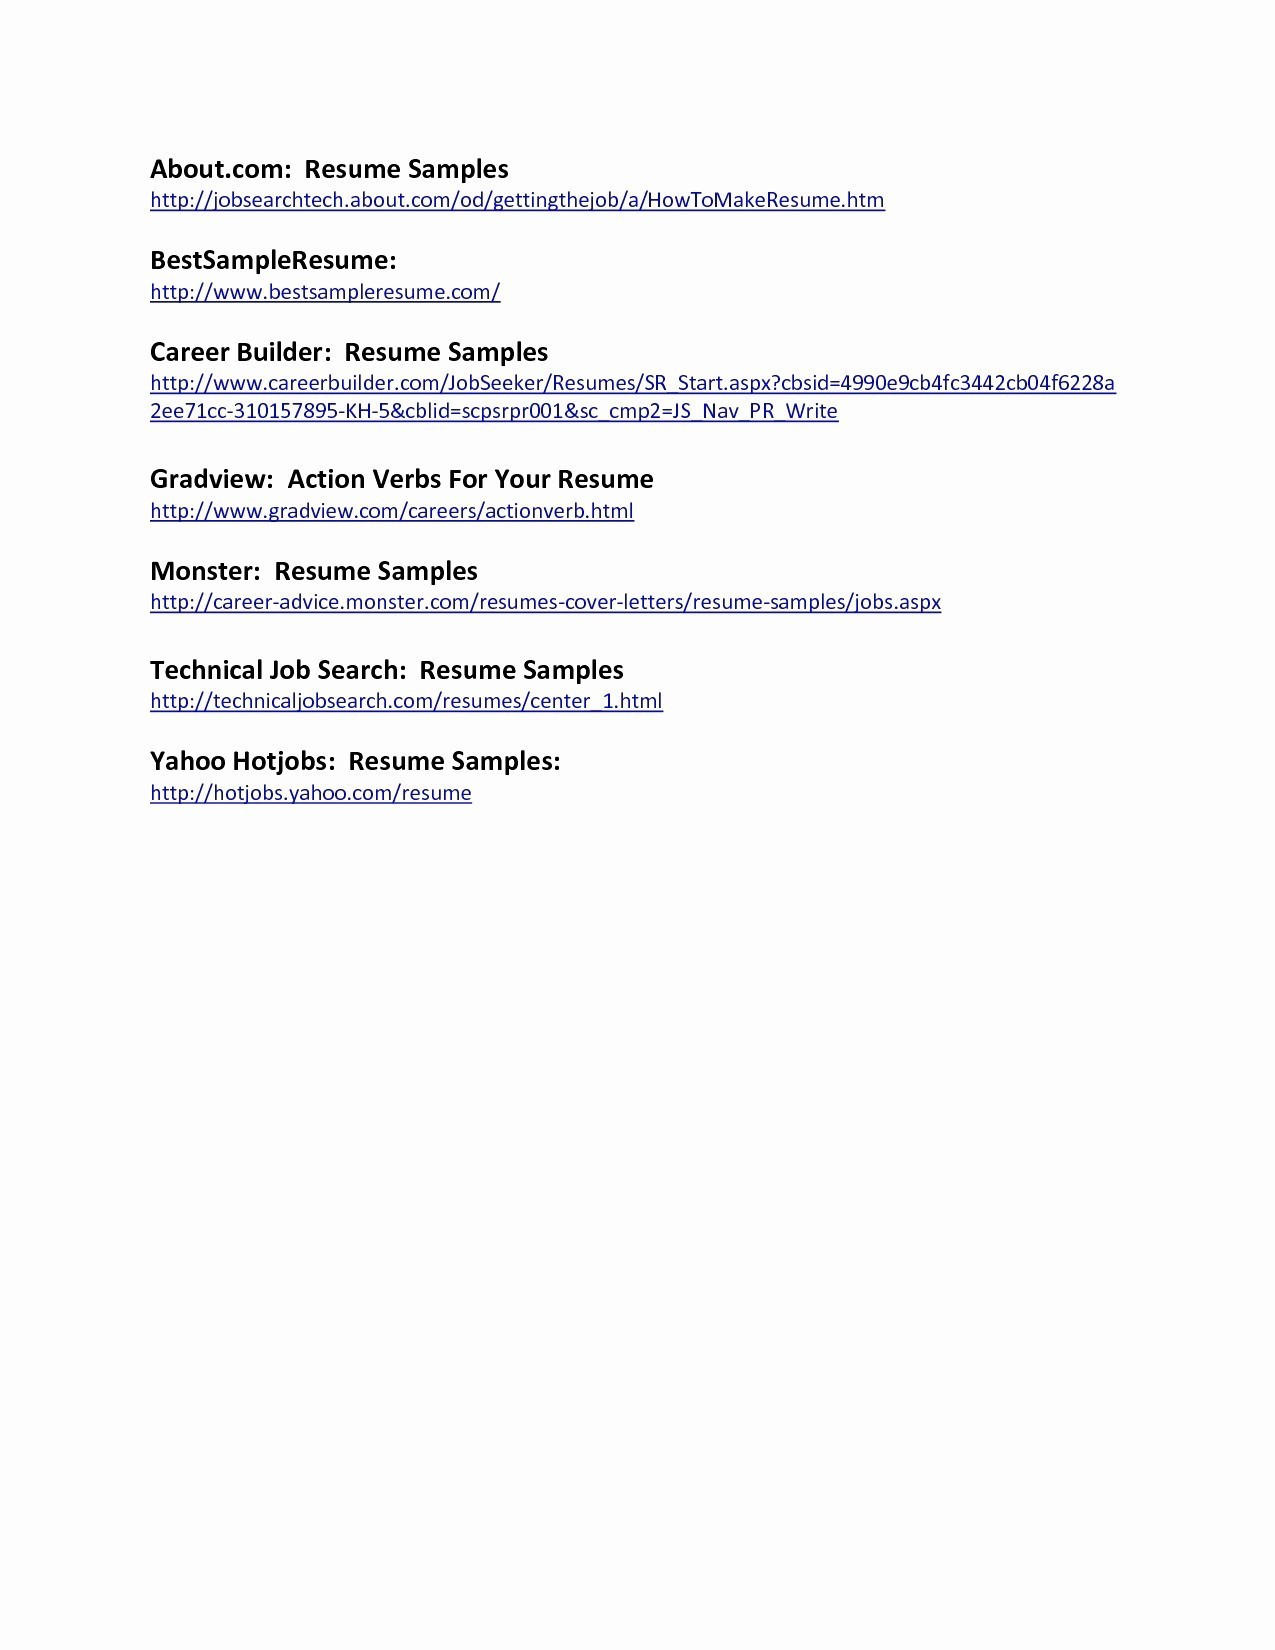 Sample Resumes for Respiratory therapist - Certified Respiratory therapist Resume Inspirationa Respiratory